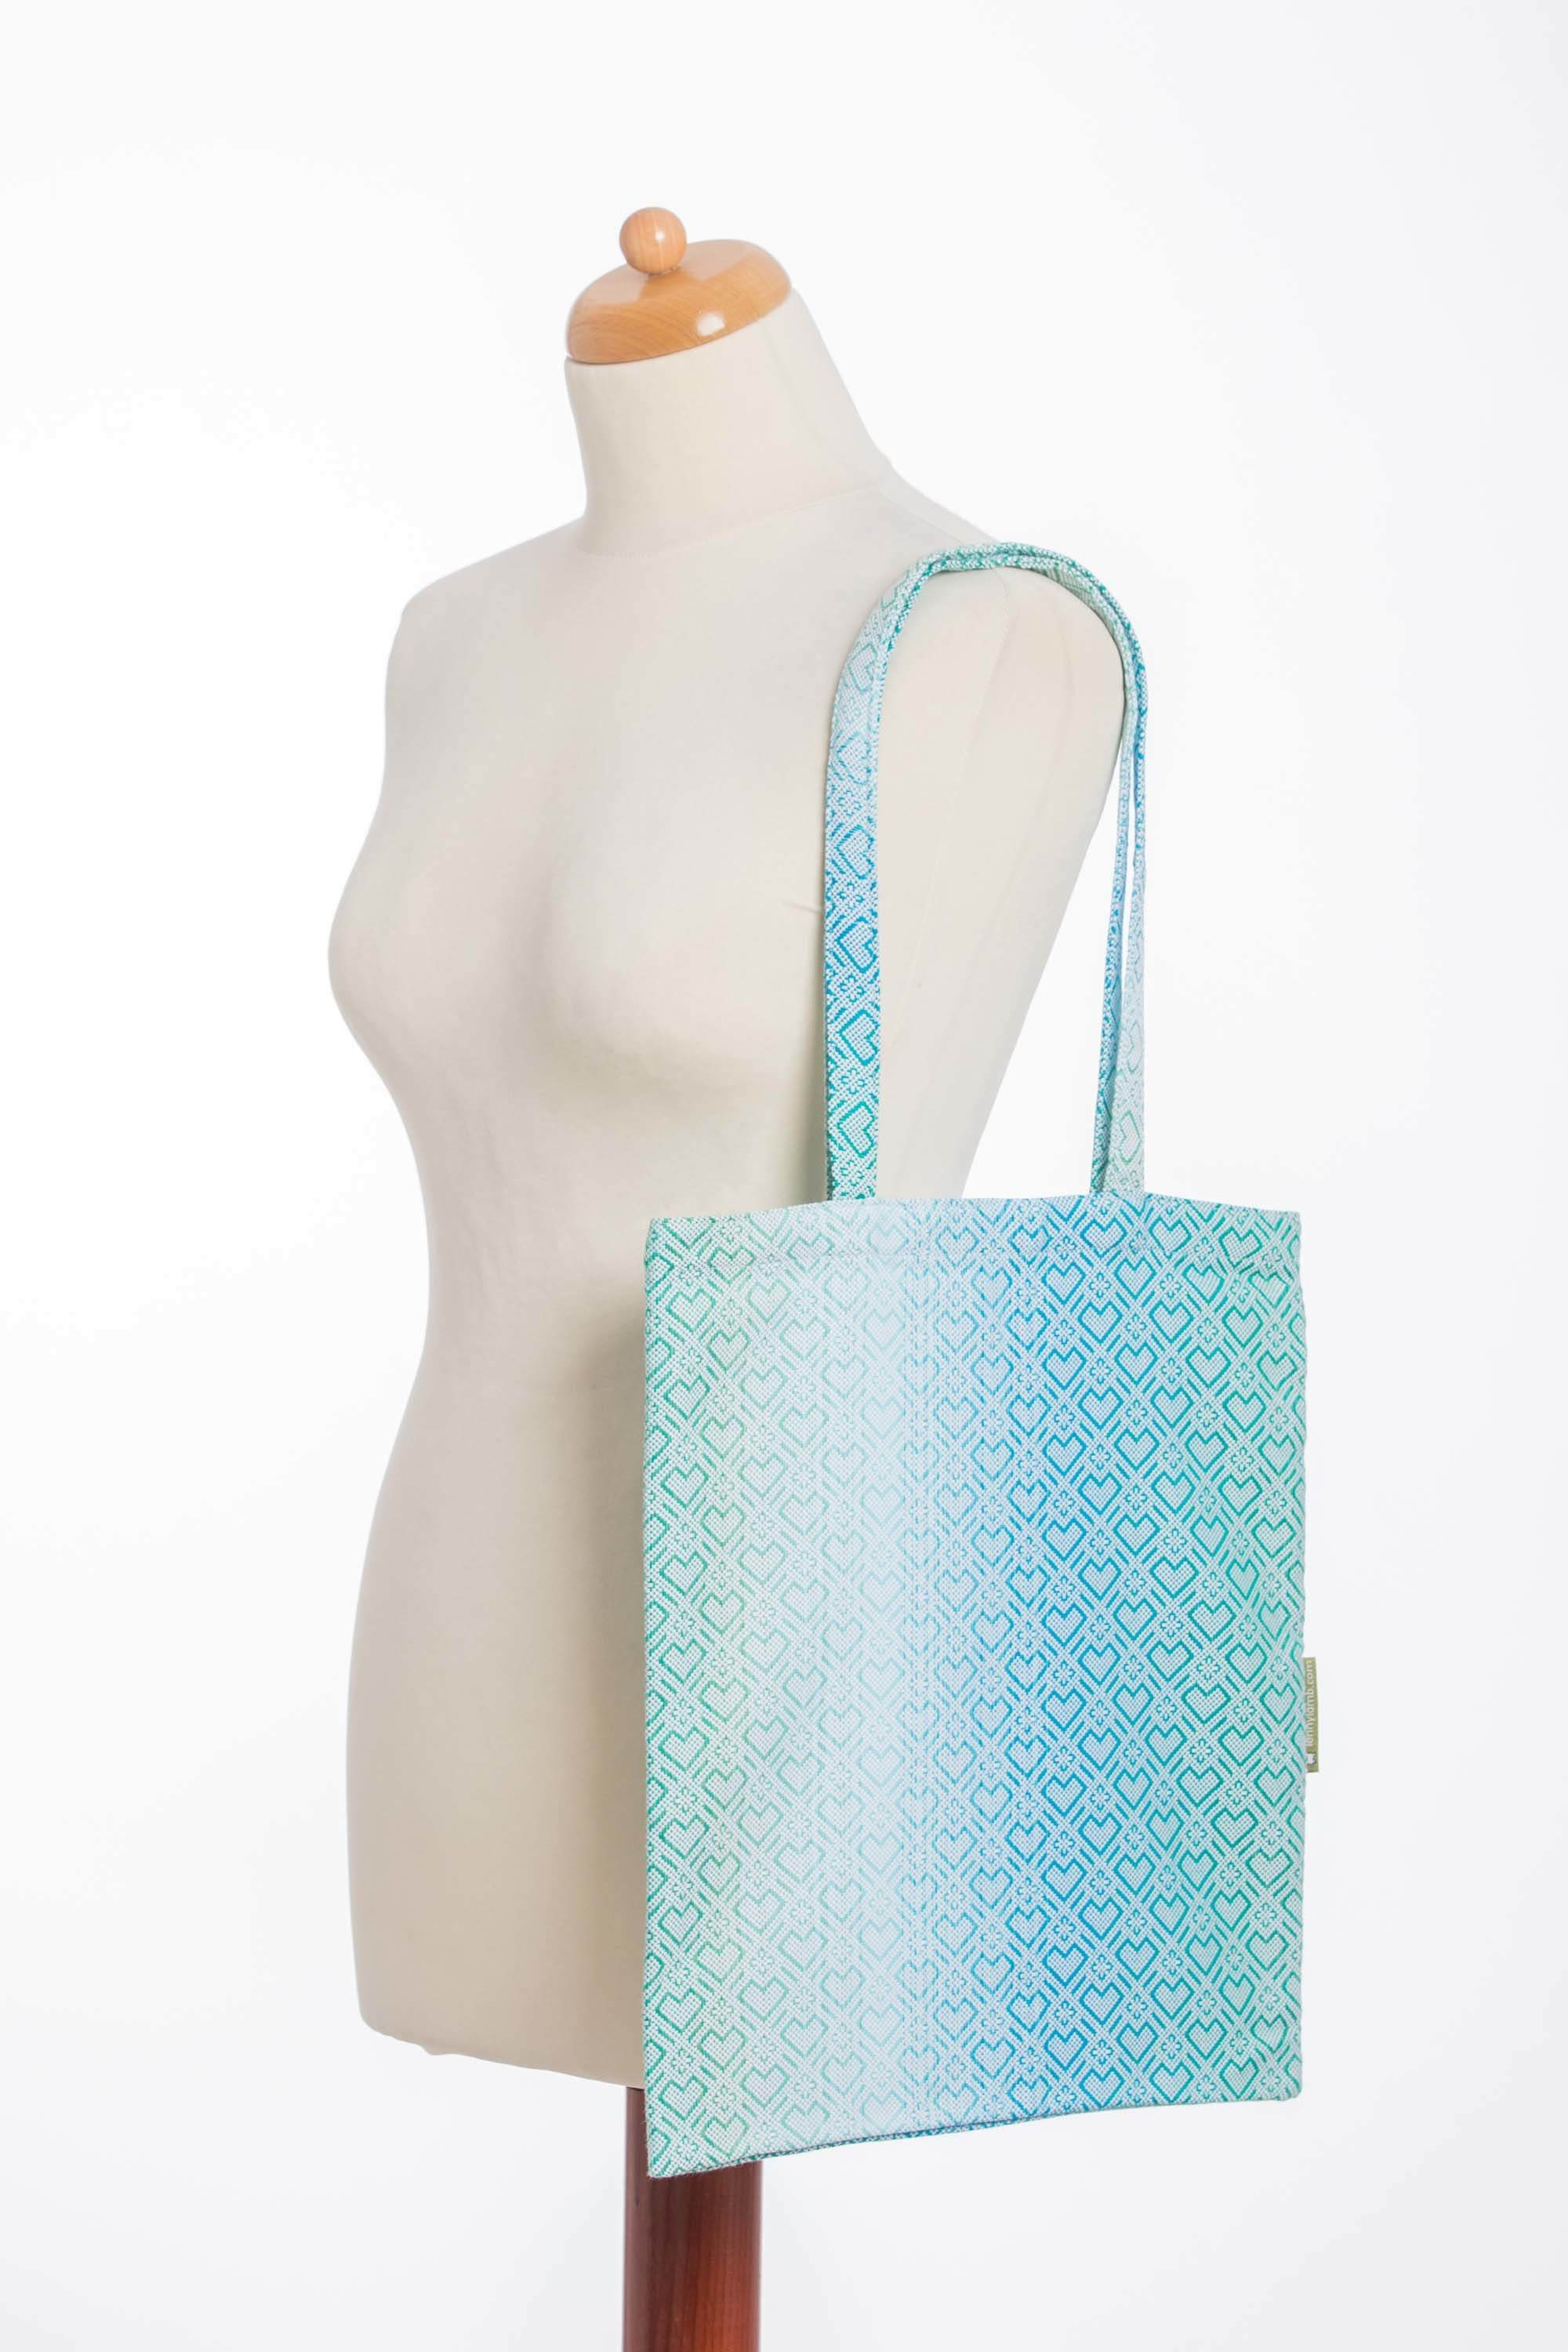 LennyLamb Shopping Bag - Big Love - Ice Mint